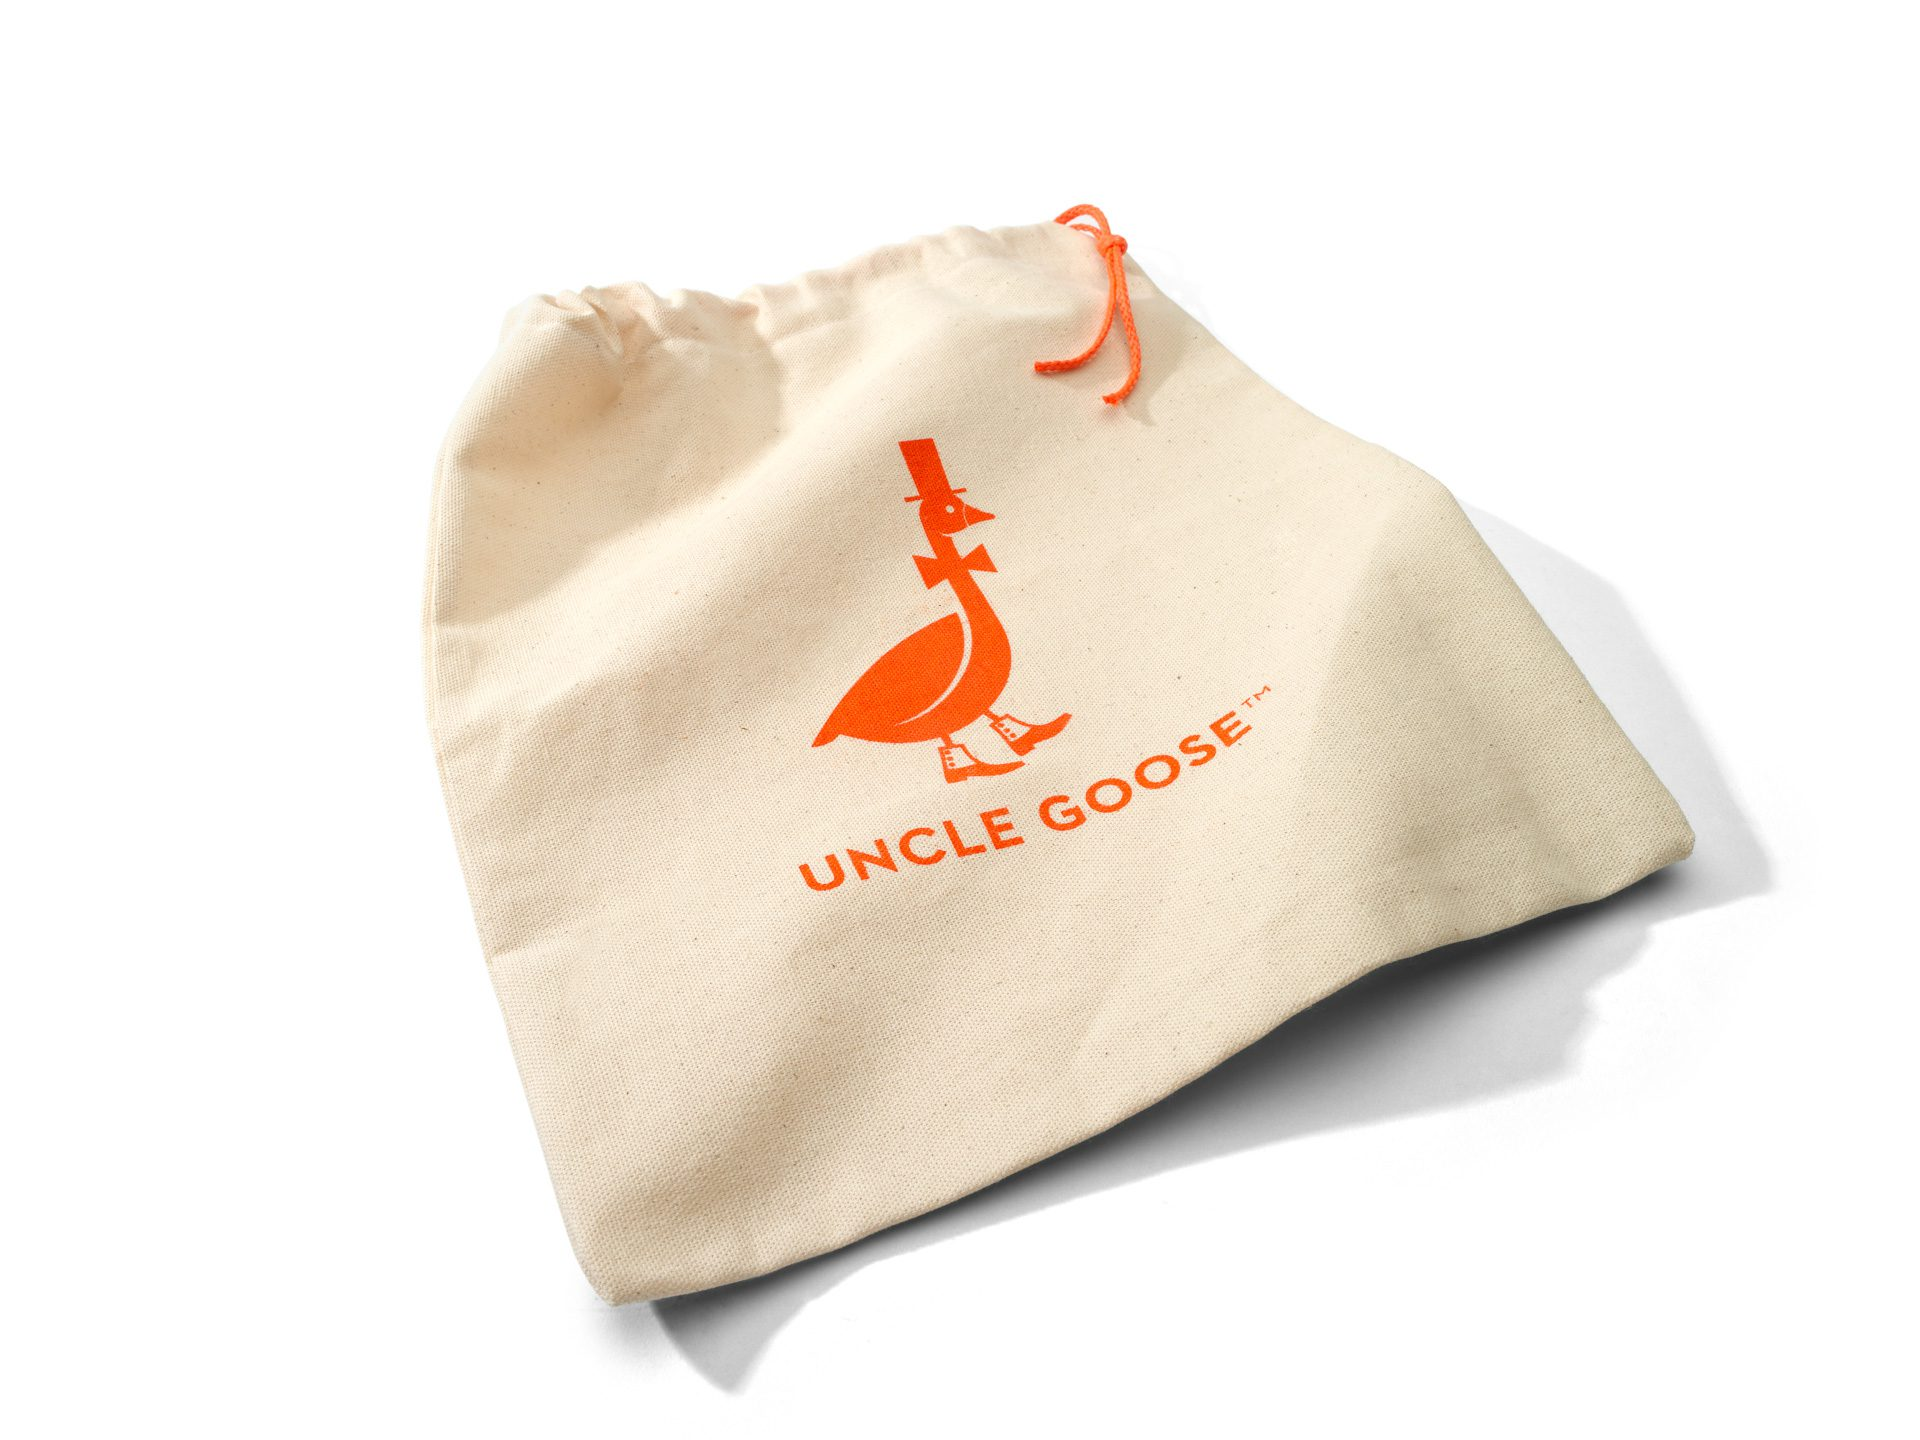 Bright Bright Great for Uncle Goose